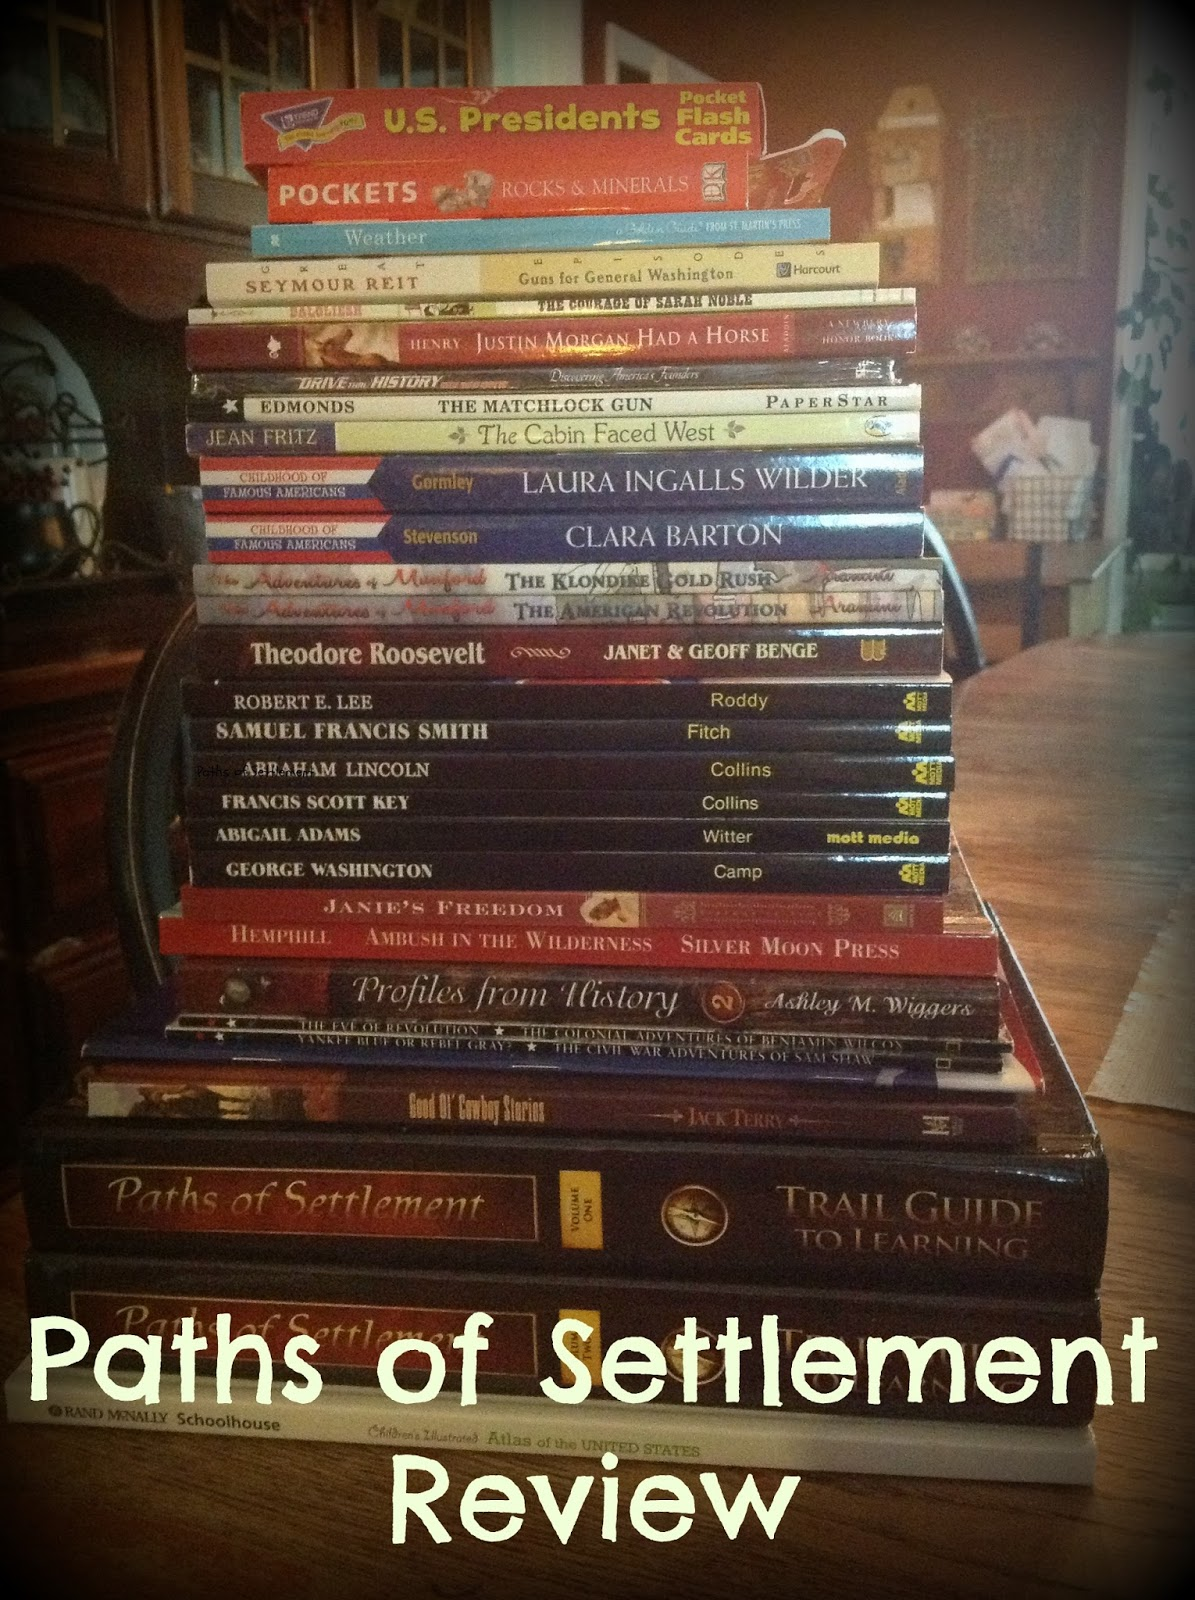 My testimony living sola gratia trail guide to learning paths of settlement review giveaway fandeluxe Image collections